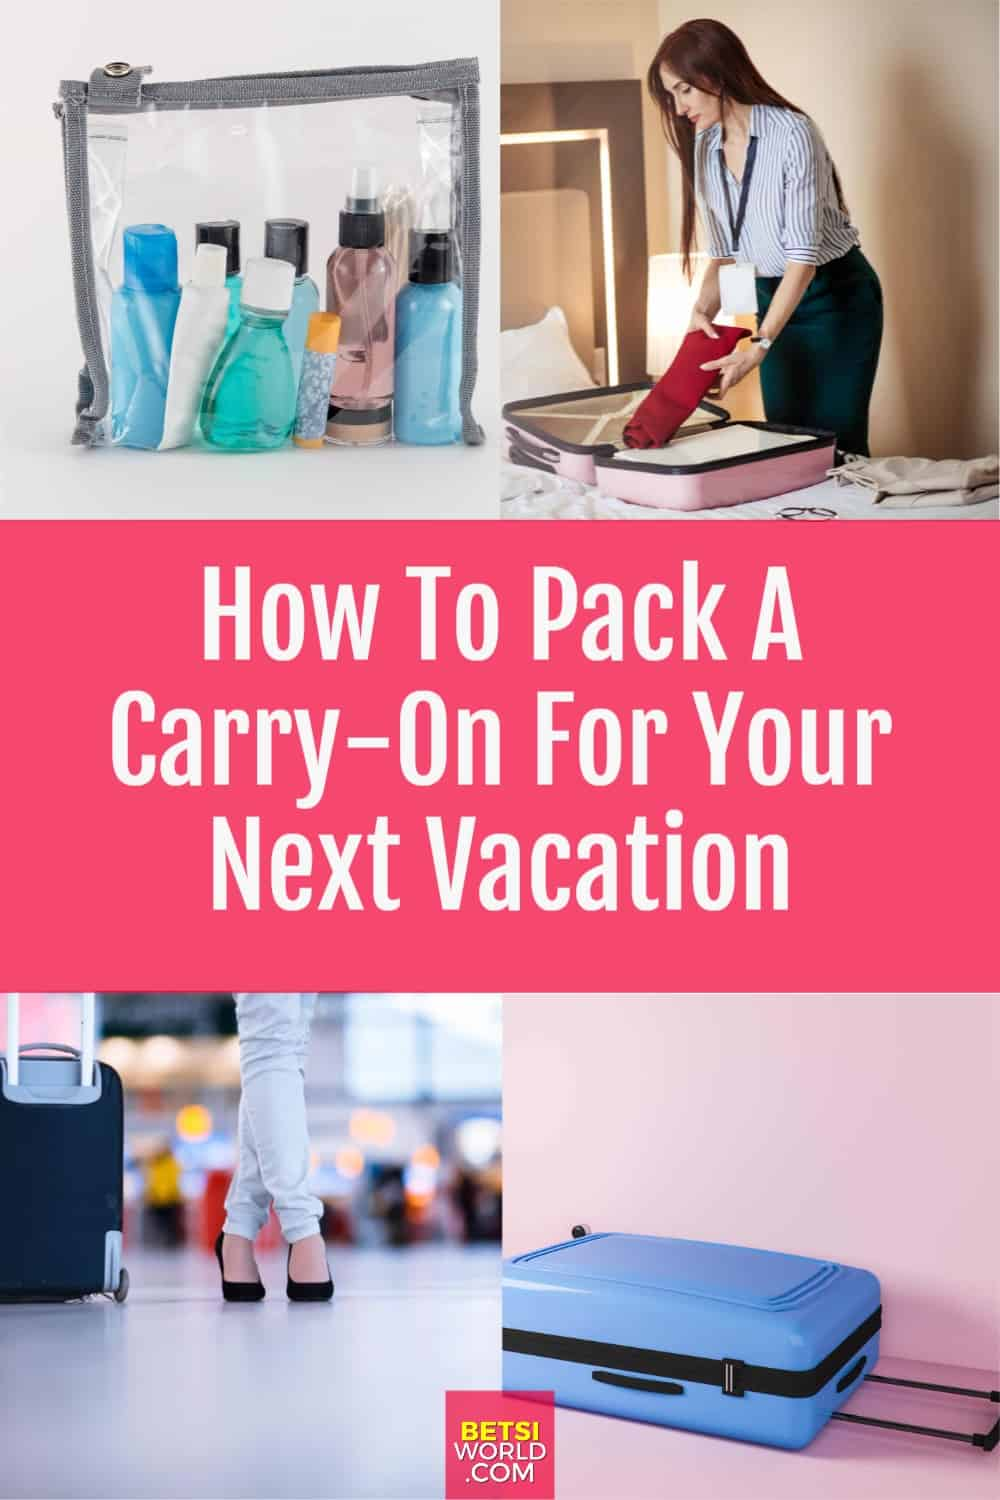 How To Pack A Carry-On For Your Next Vacation